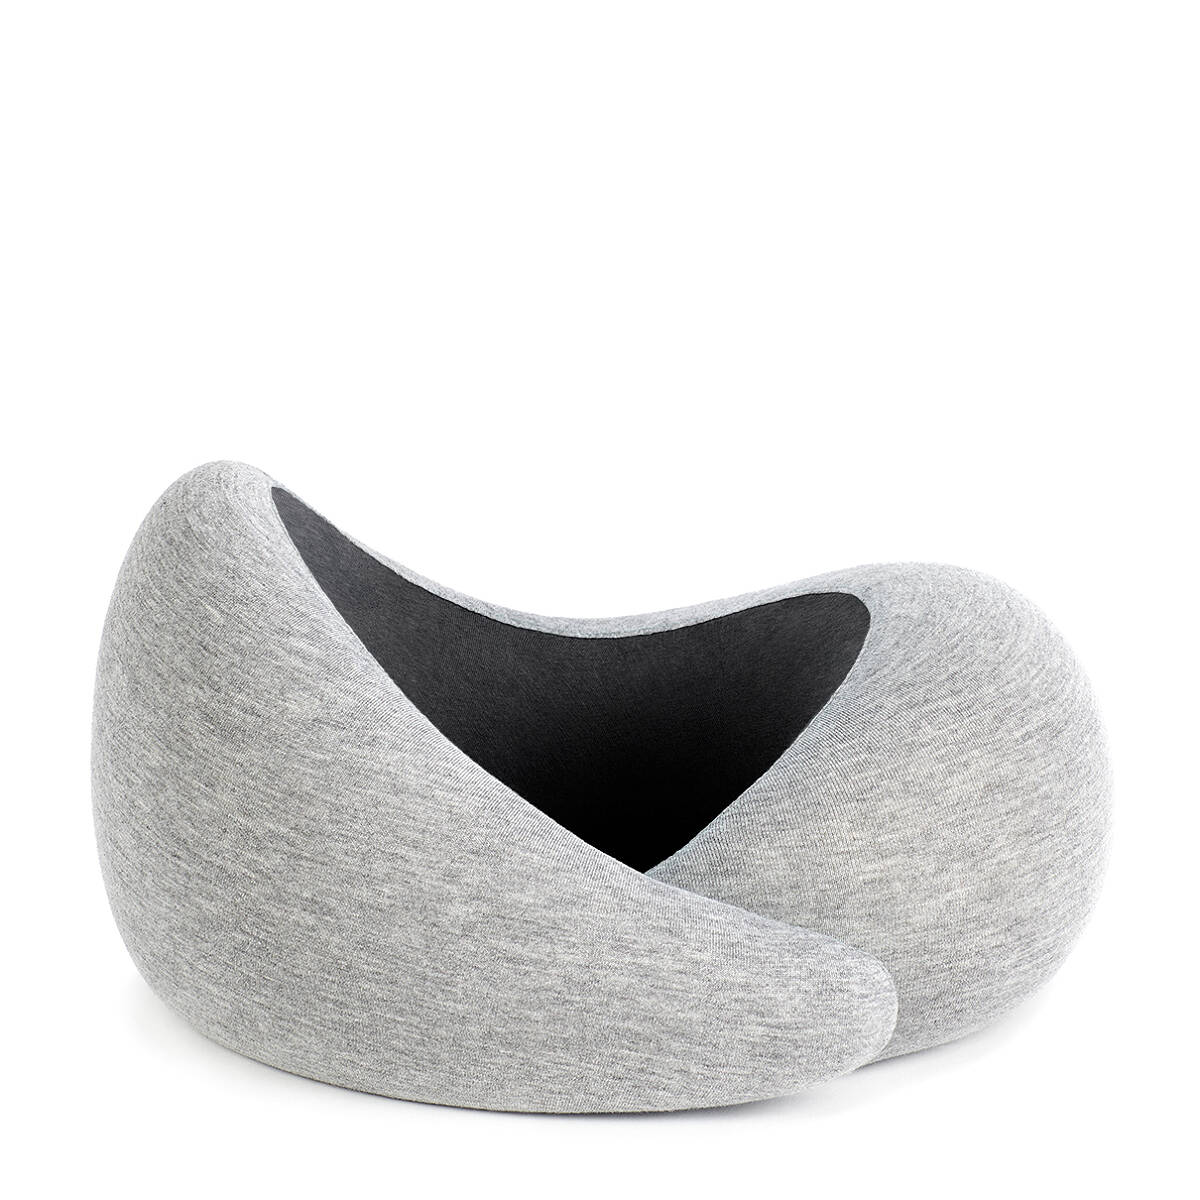 support cushion item inflatable neck travel pillow innovative chin colors airplane pillows head